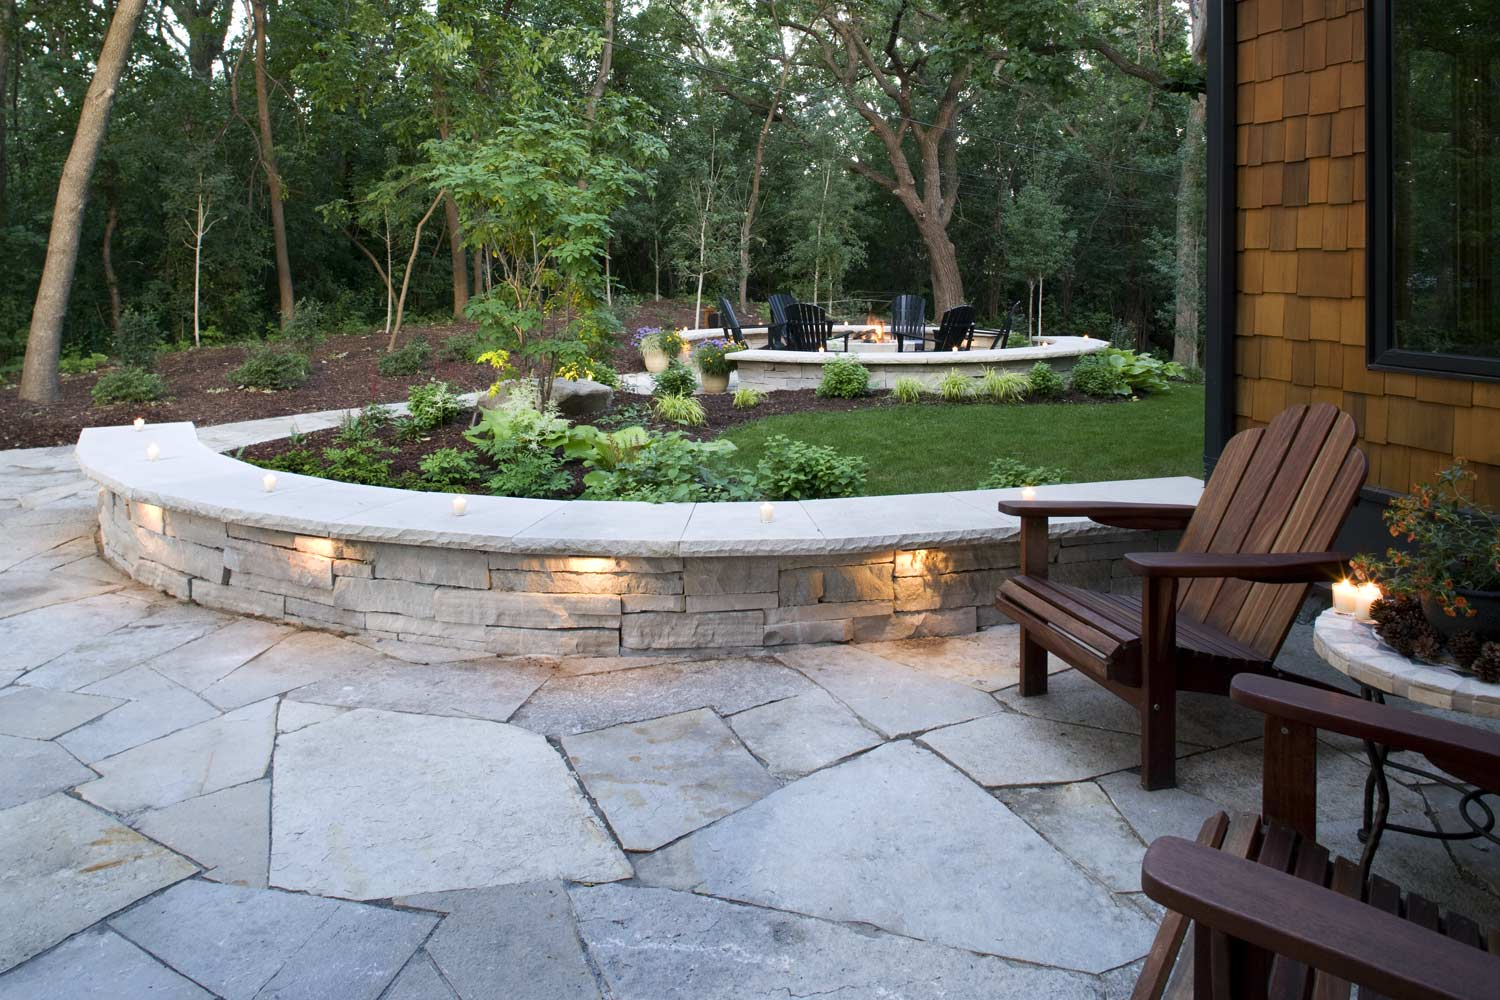 Natural stone path and stacked stone retaining wall